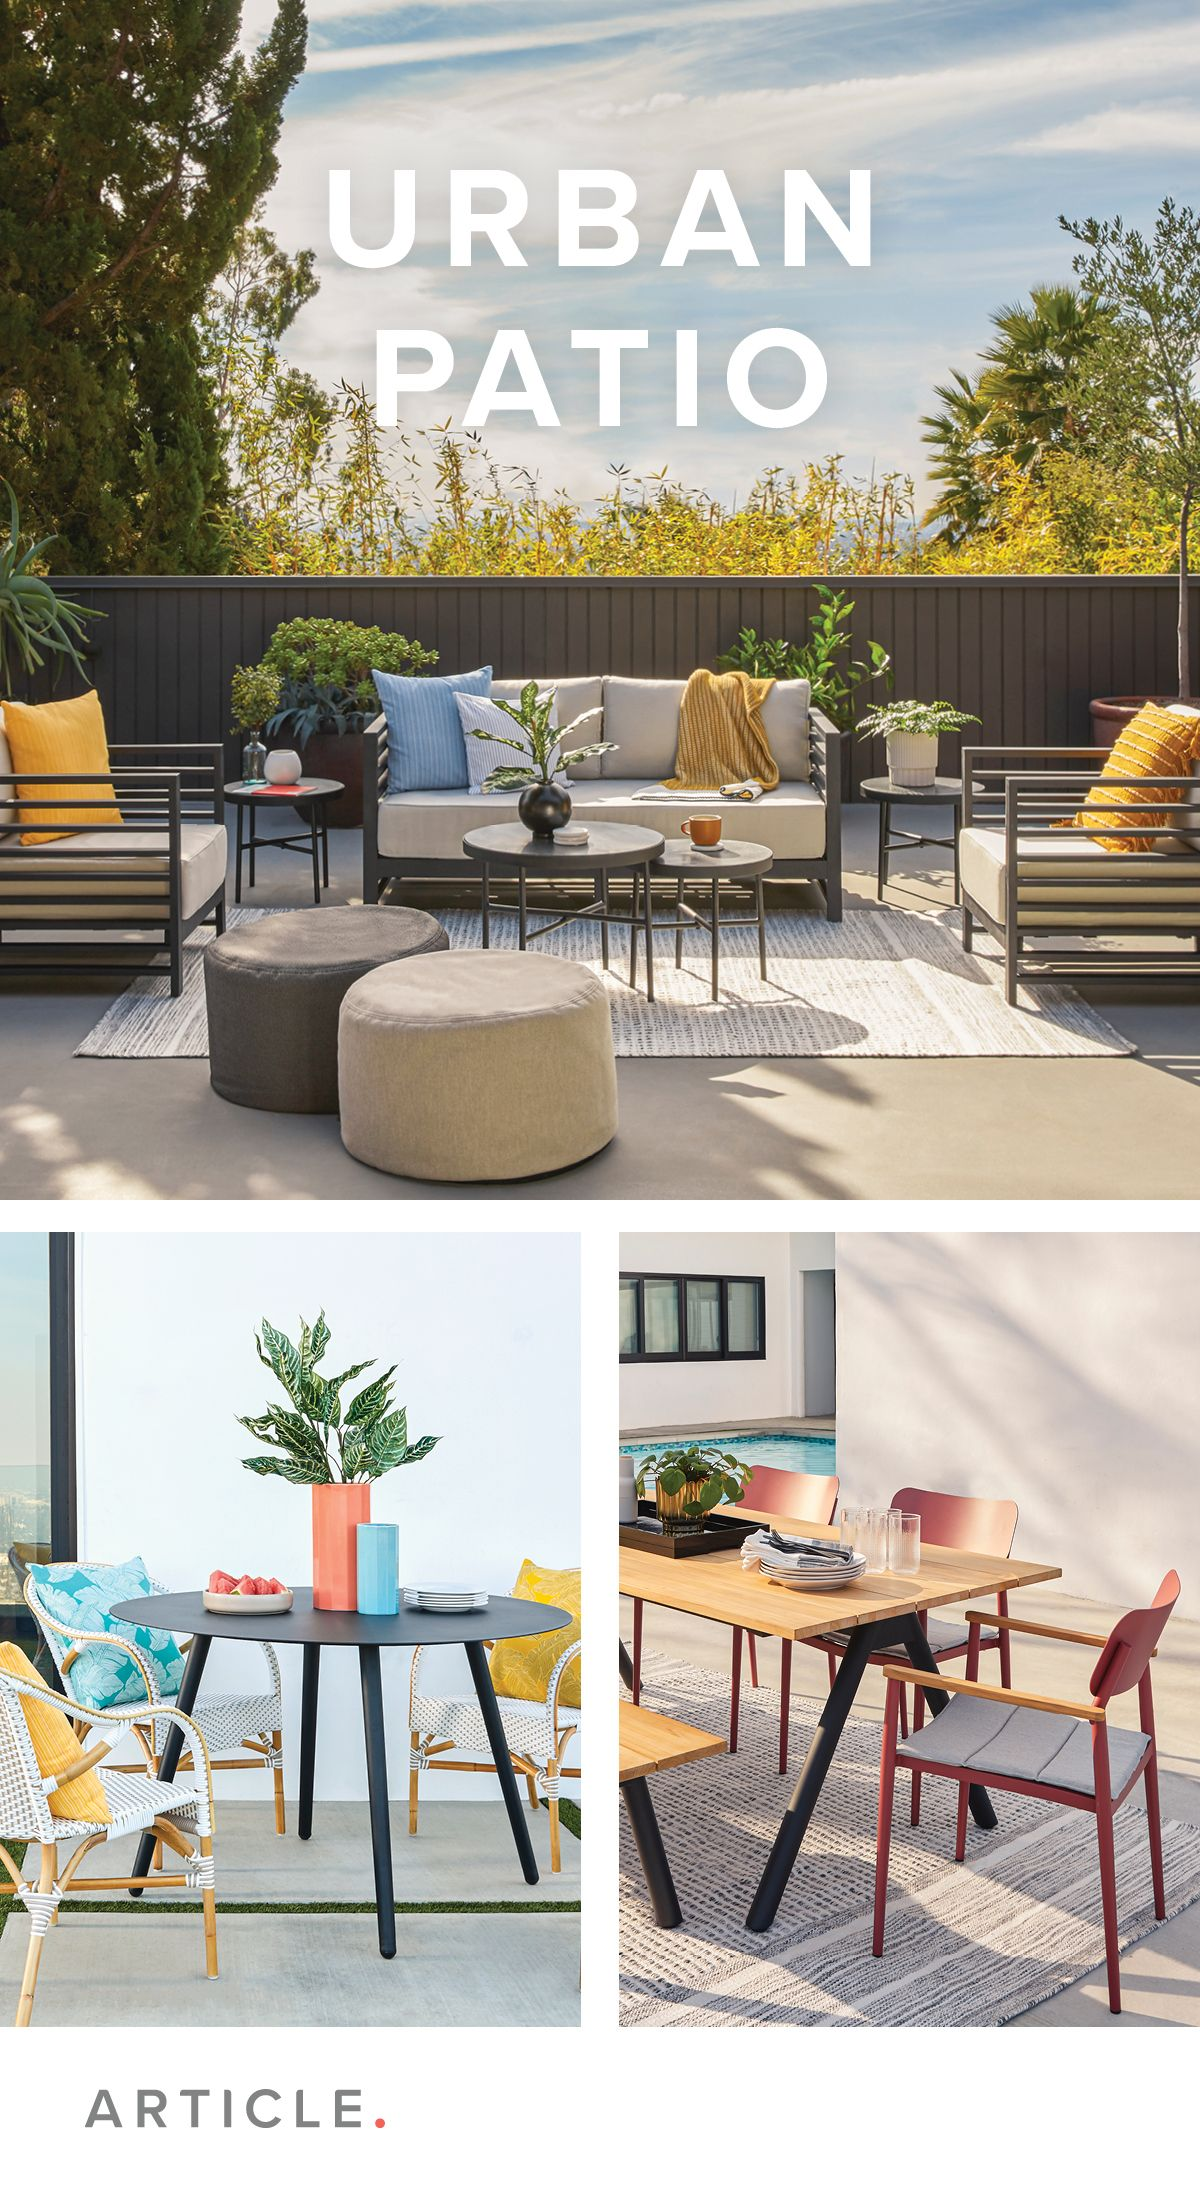 Clean Lines Industrial Materials And Pops Of Bold Color Make An Impact With Minimal Simplicity In 2020 Poolside Decor Outdoor Furniture Sets Patio Design